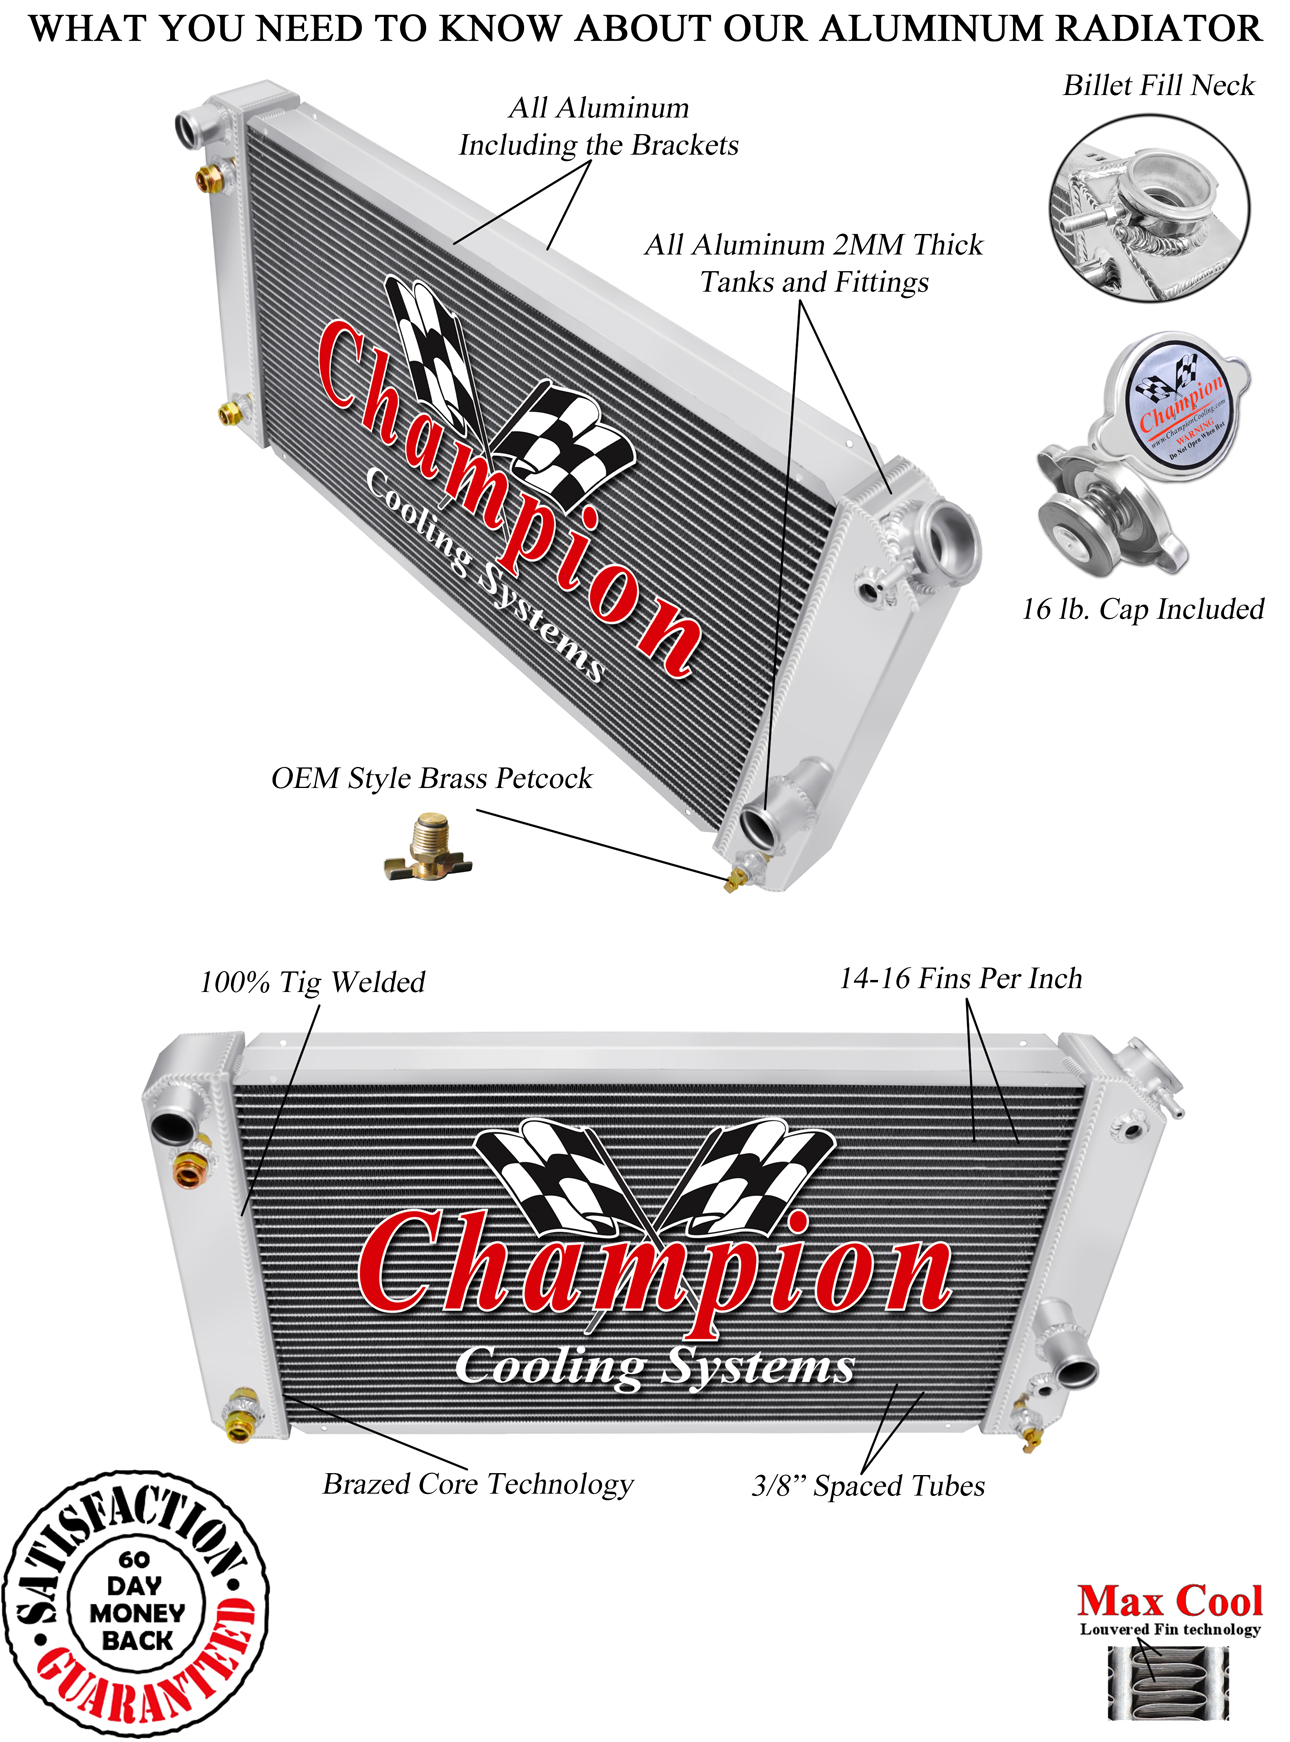 https://www.championcooling.com/photos/Photos%20White/Without%20Fans/1826/1826_%20white_diagram_1.jpg